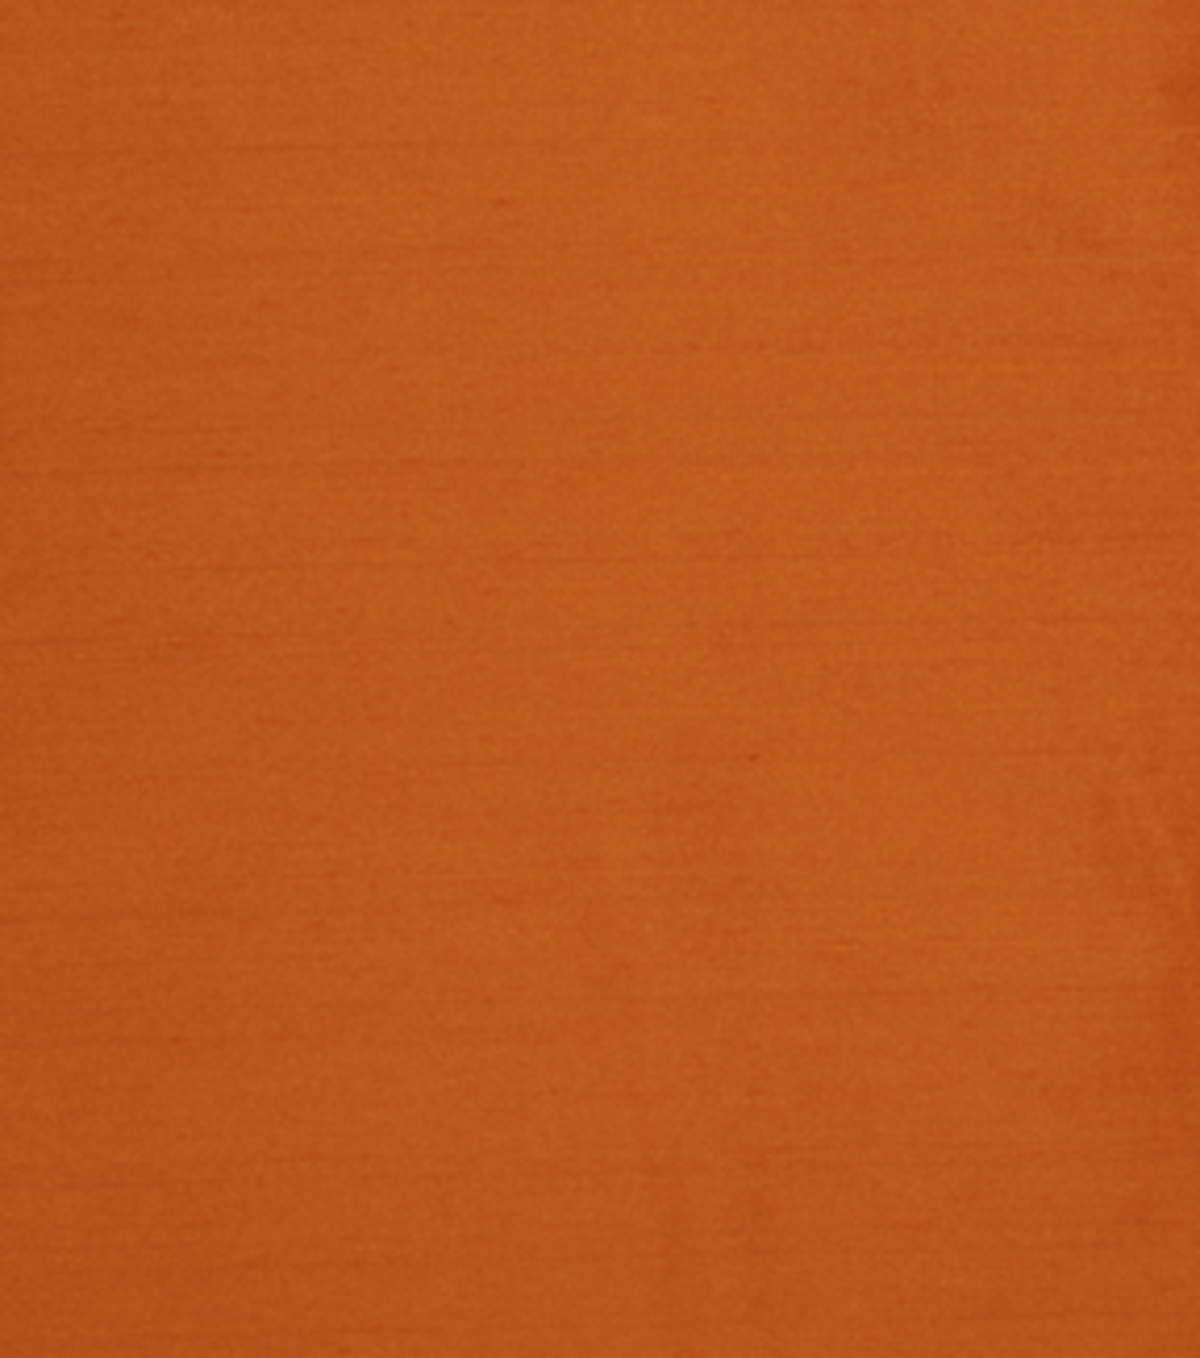 Home Decor 8\u0022x8\u0022 Fabric Swatch-Signature Series Bravo Glow